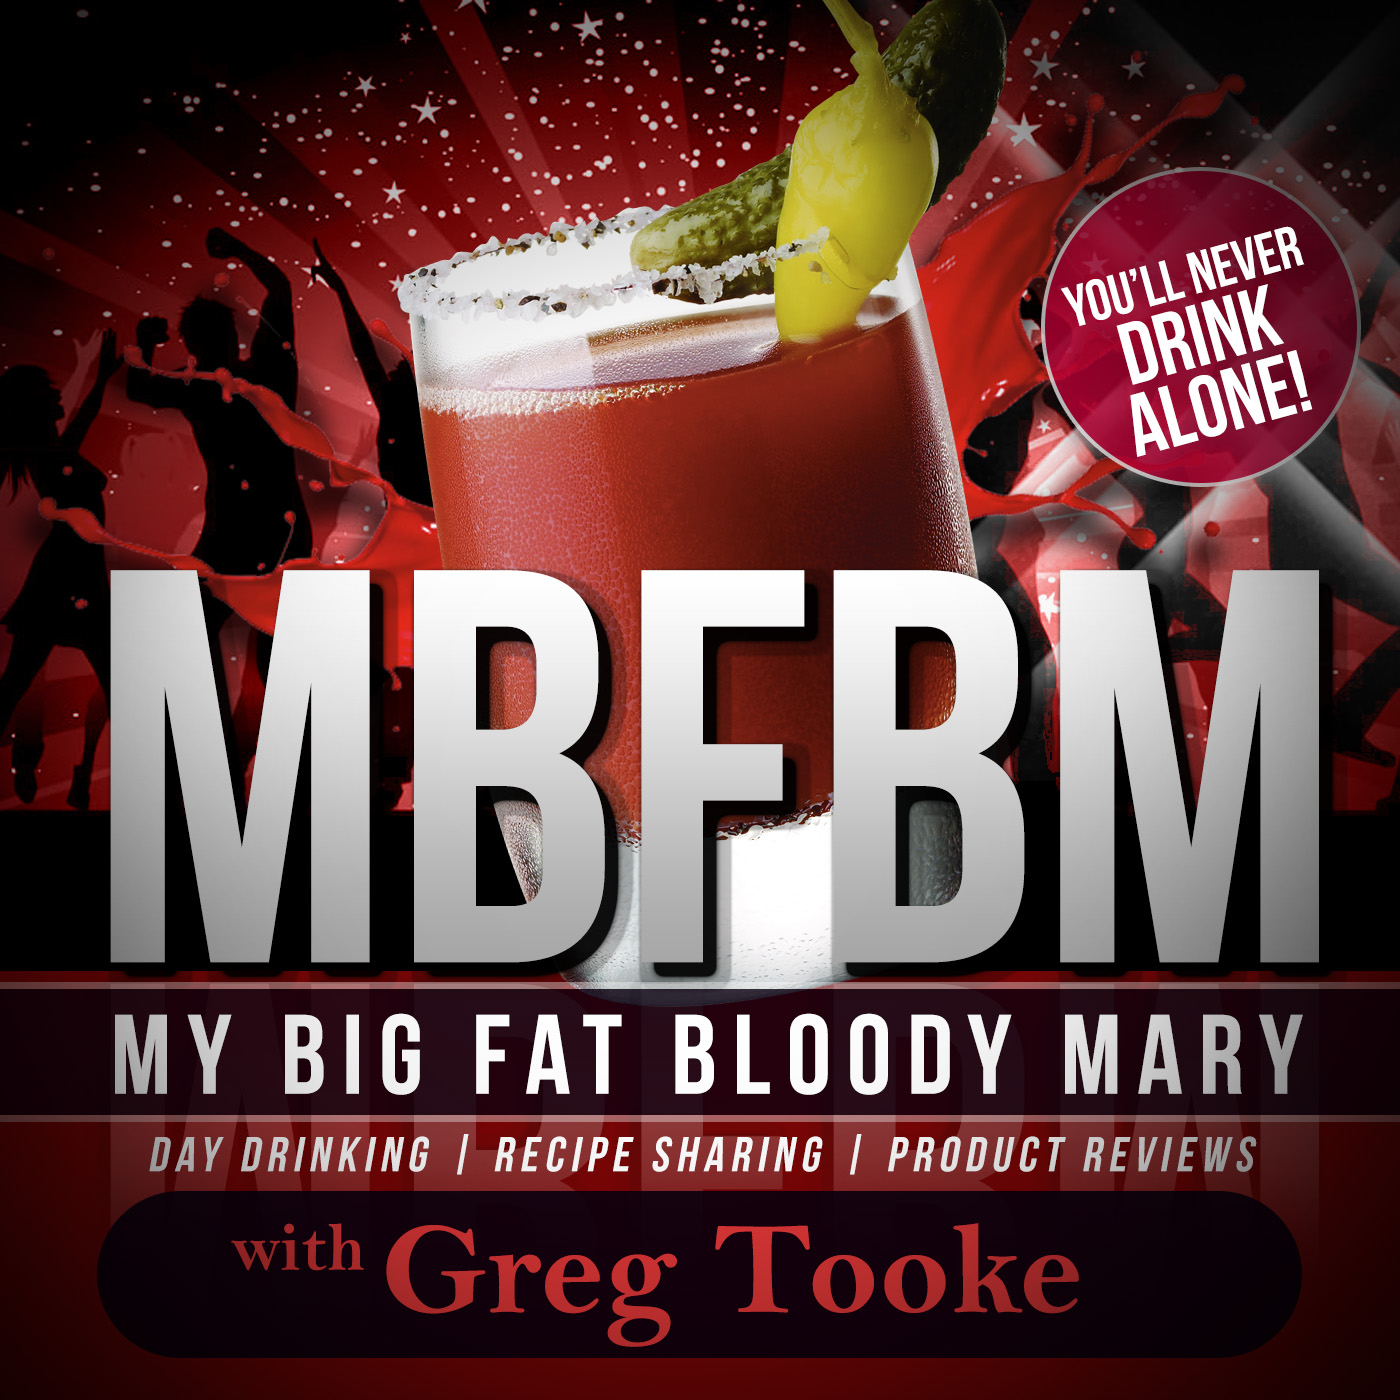 My Big Fat Bloody Mary Podcast: Day Drinking   Recipe Sharing   Product Reviews